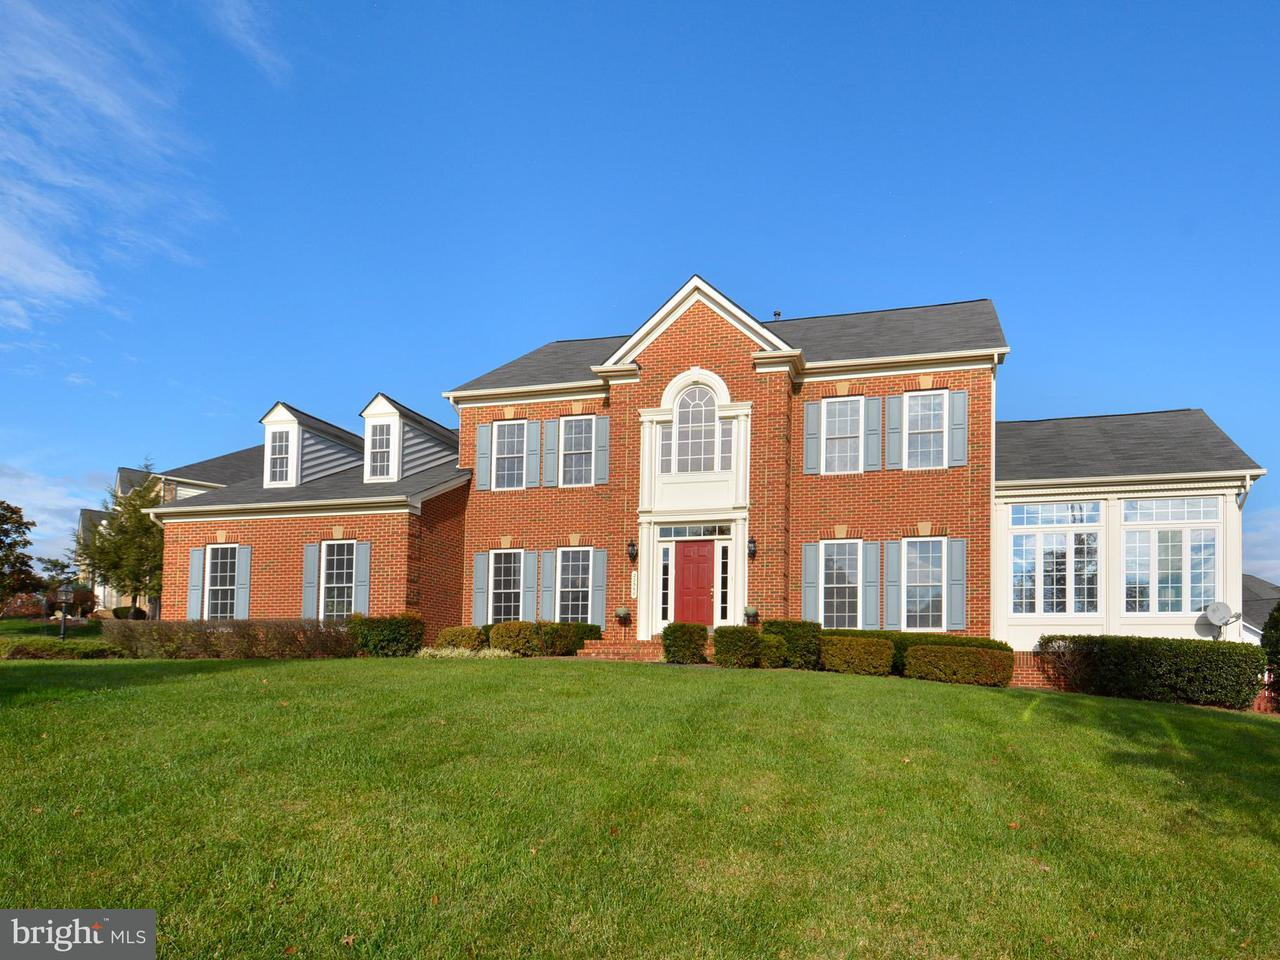 Single Family Home for Sale at 22350 Dolomite Hills Drive 22350 Dolomite Hills Drive Ashburn, Virginia 20148 United States